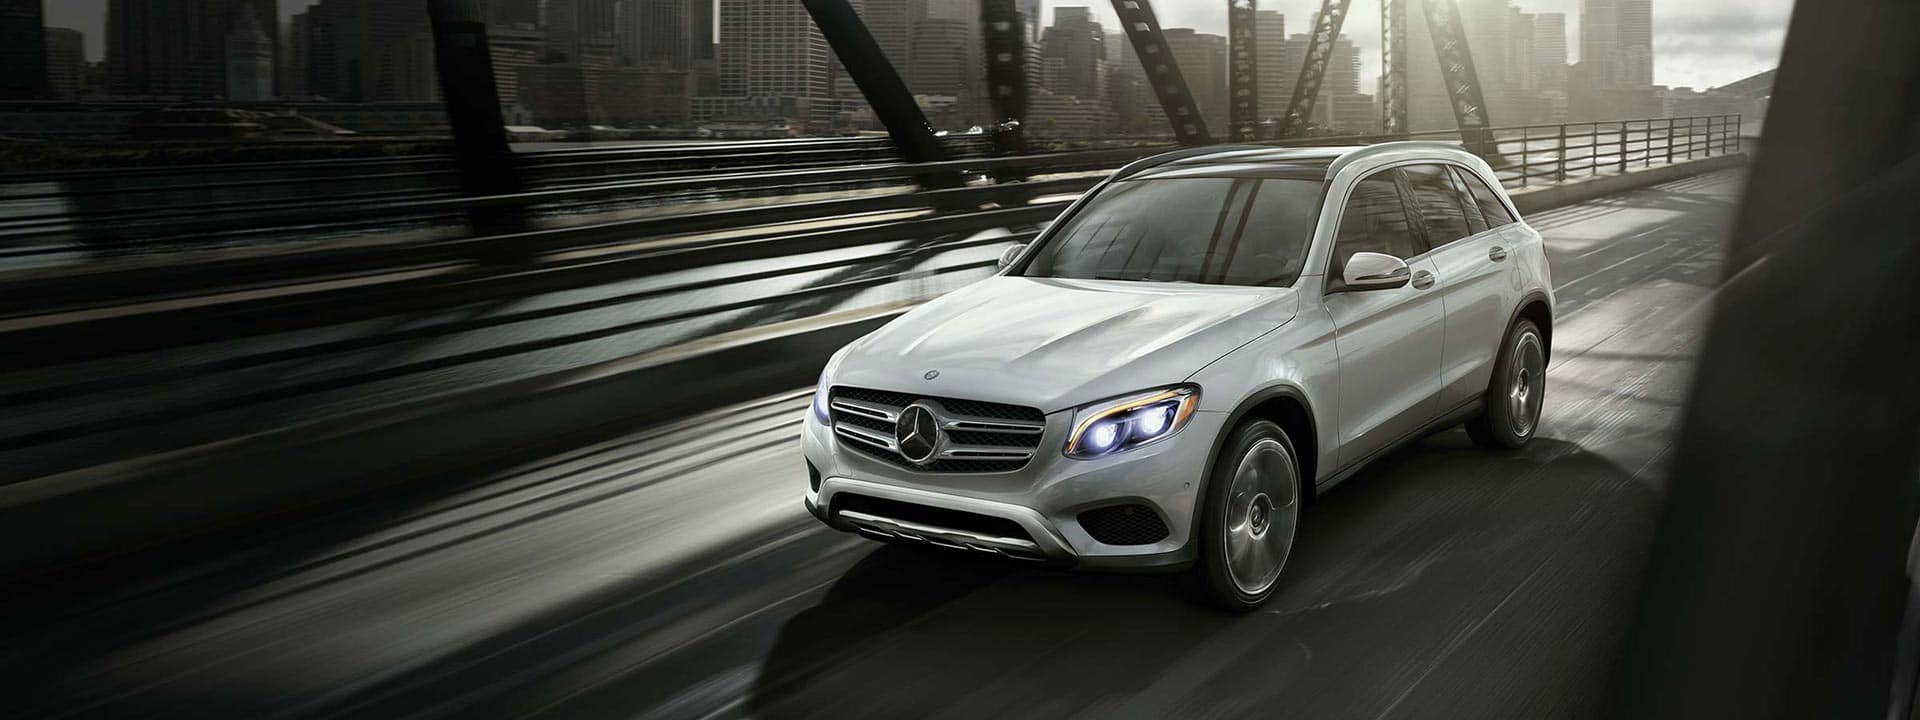 Lease a 2019 GLC 300 for $499 a month for 36 months.